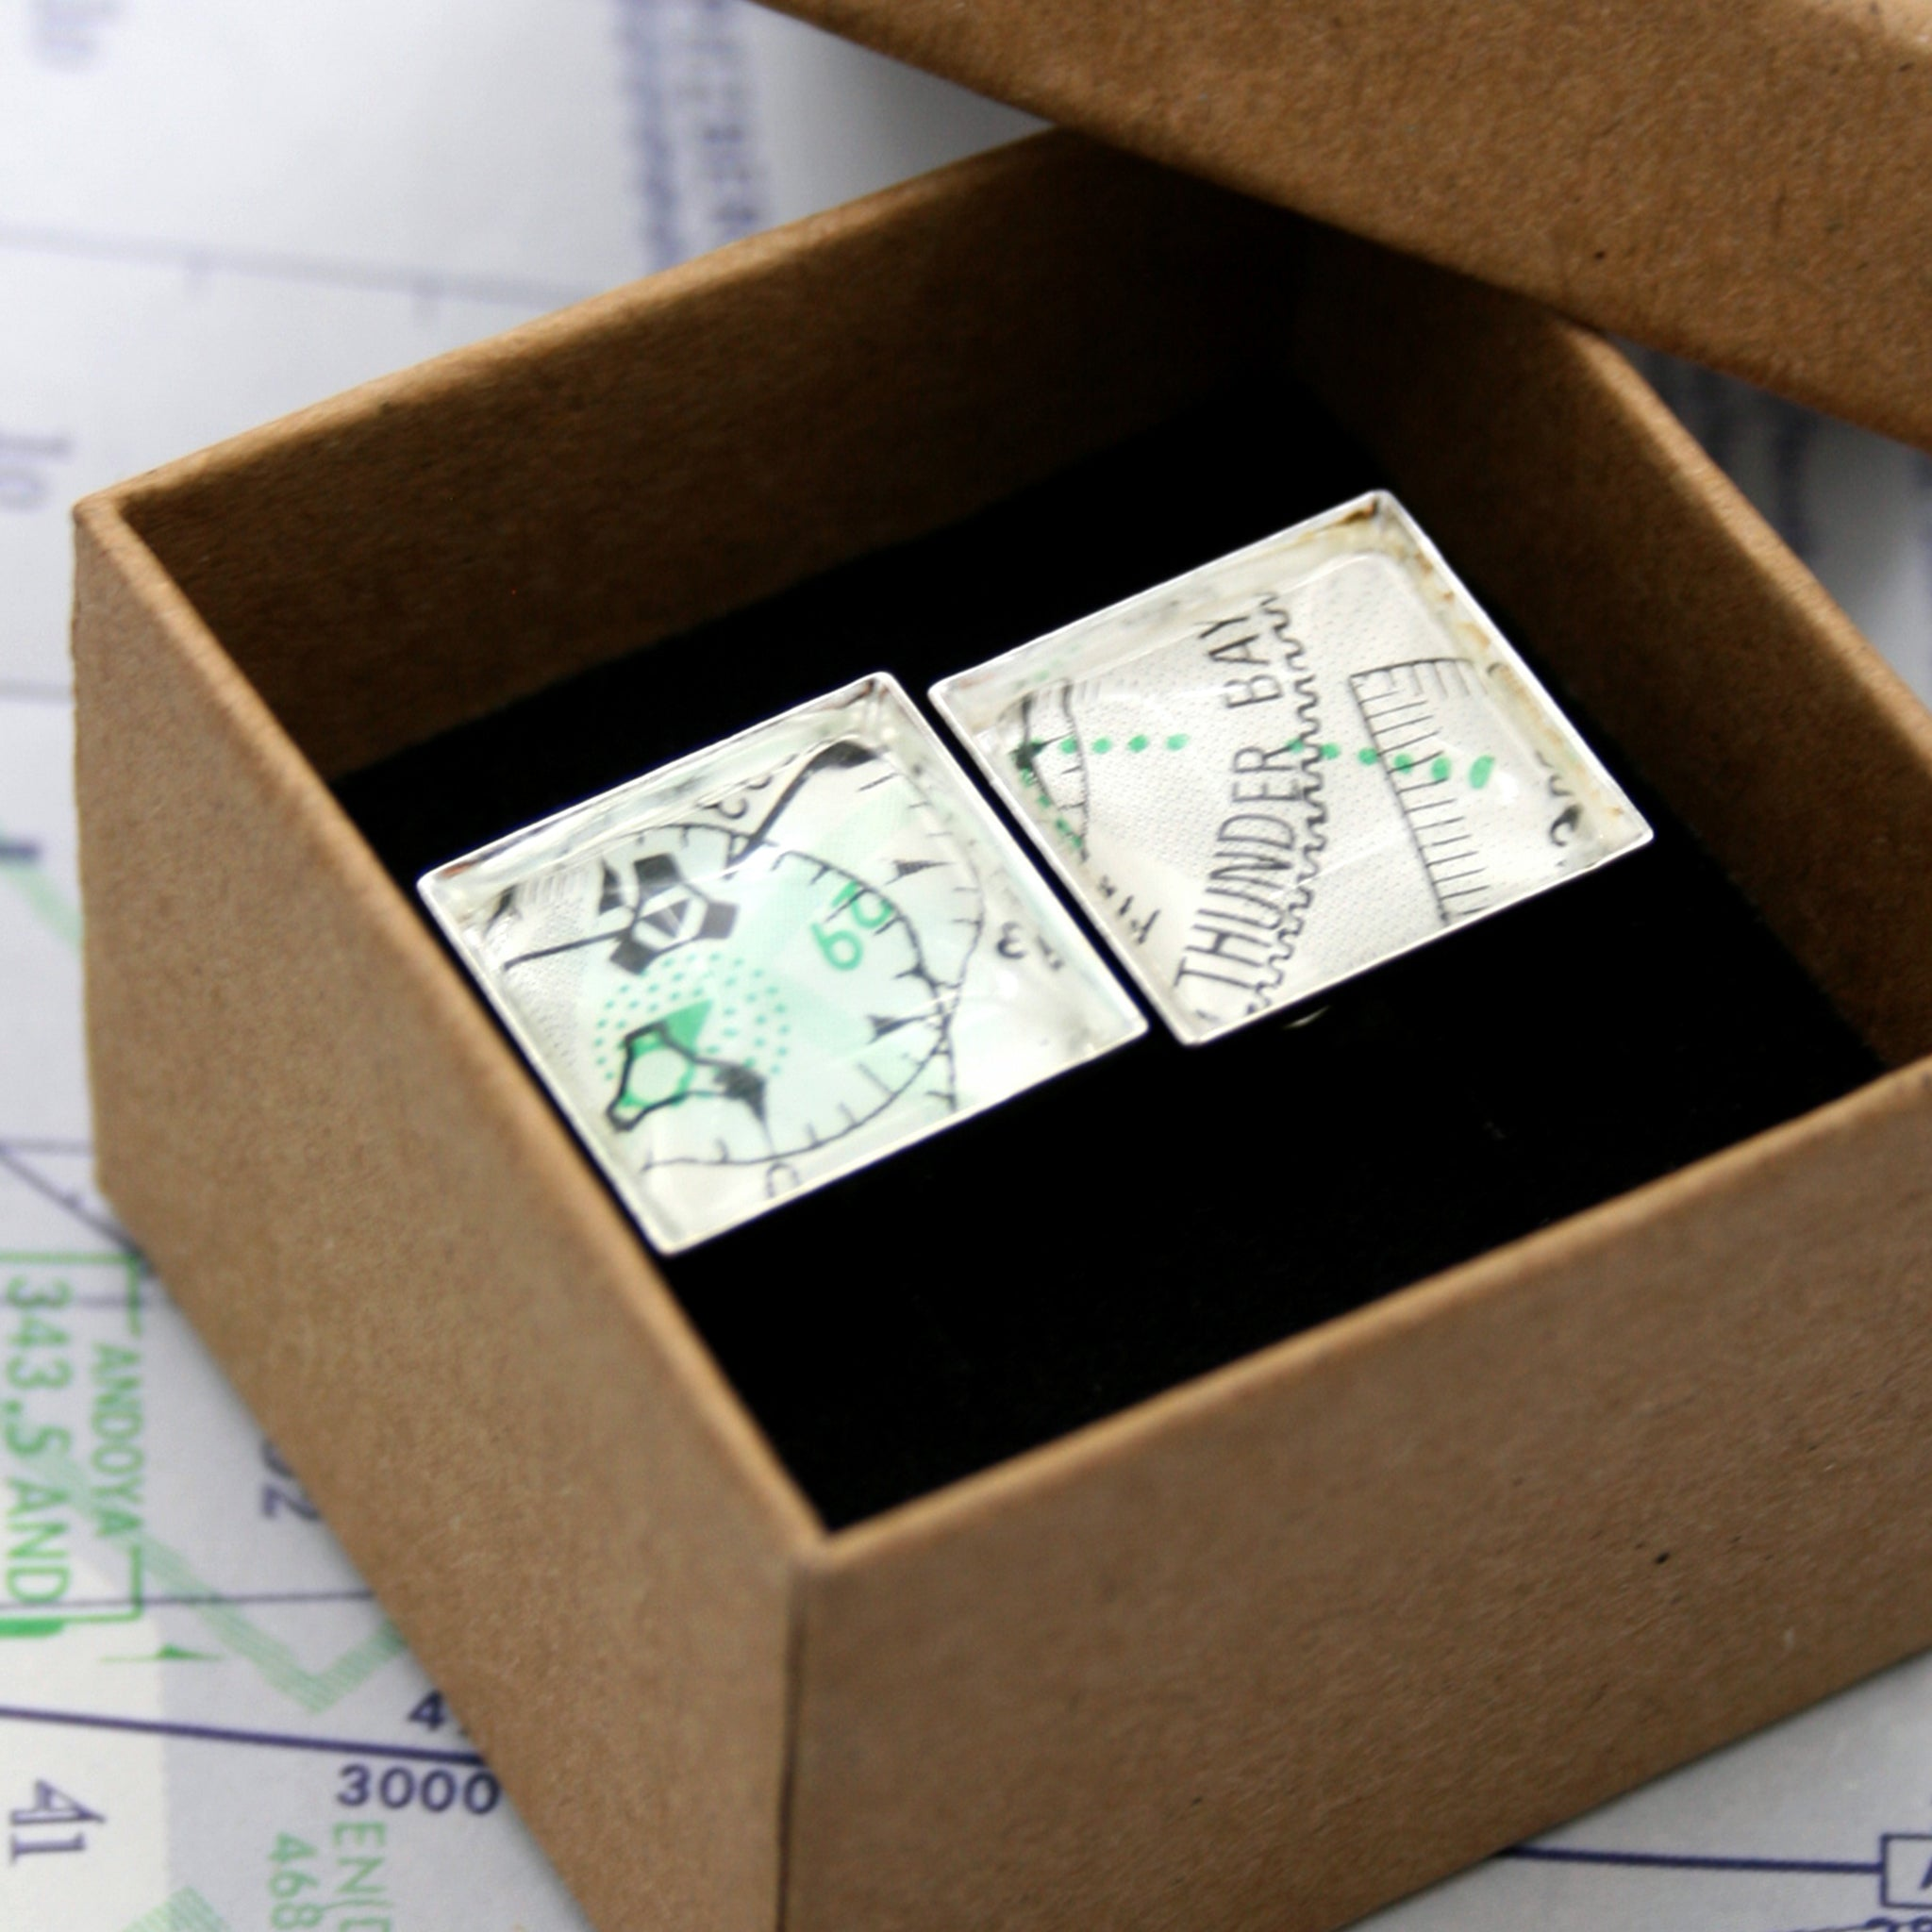 Pilot cufflinks made of aeronautical charts in a box